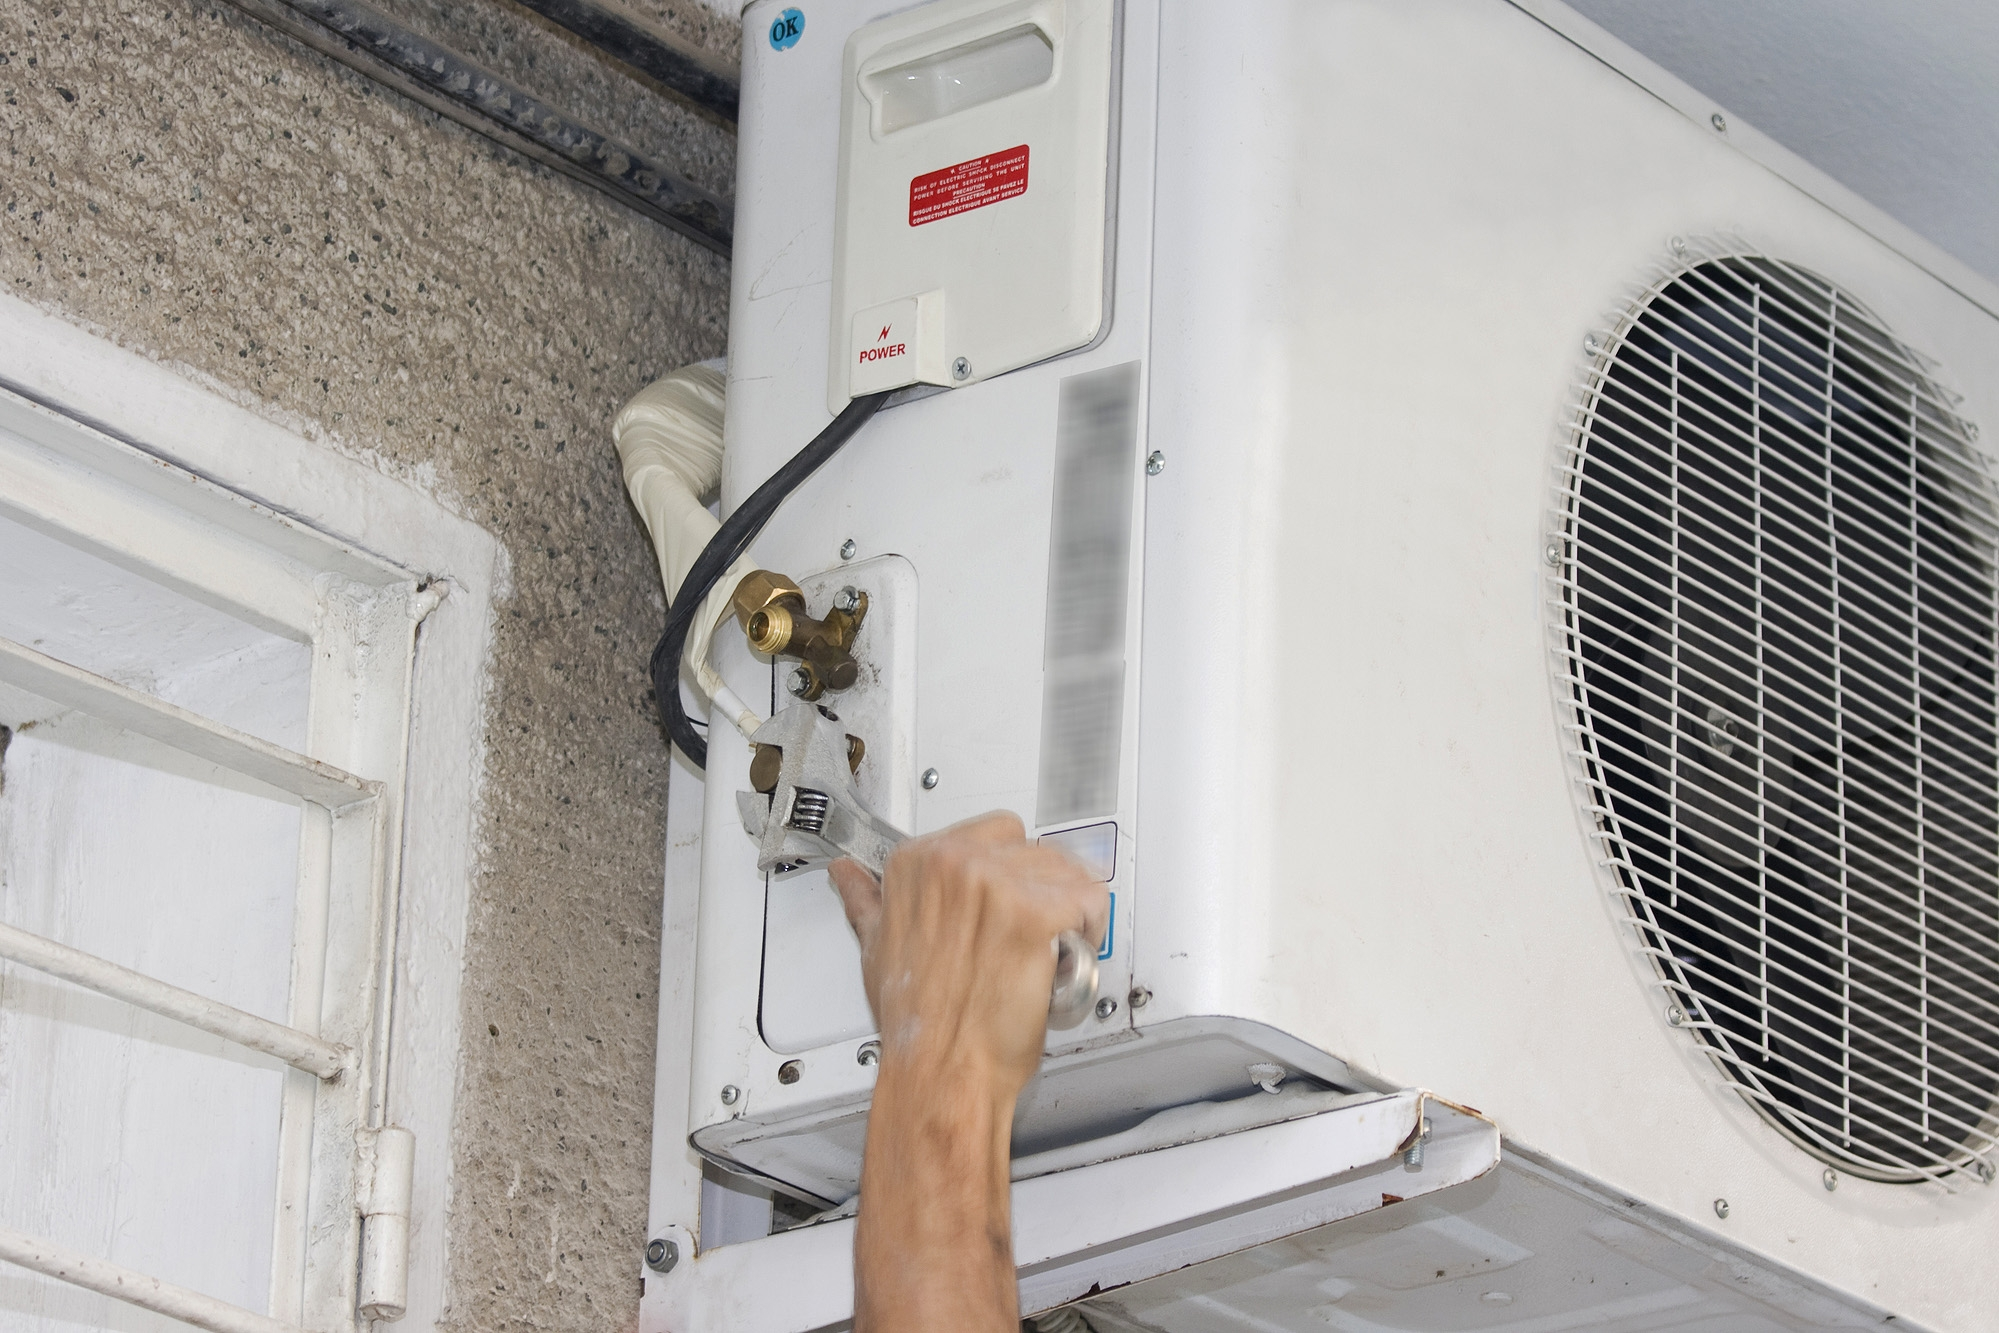 5 Steps To Service Your Air Conditioner